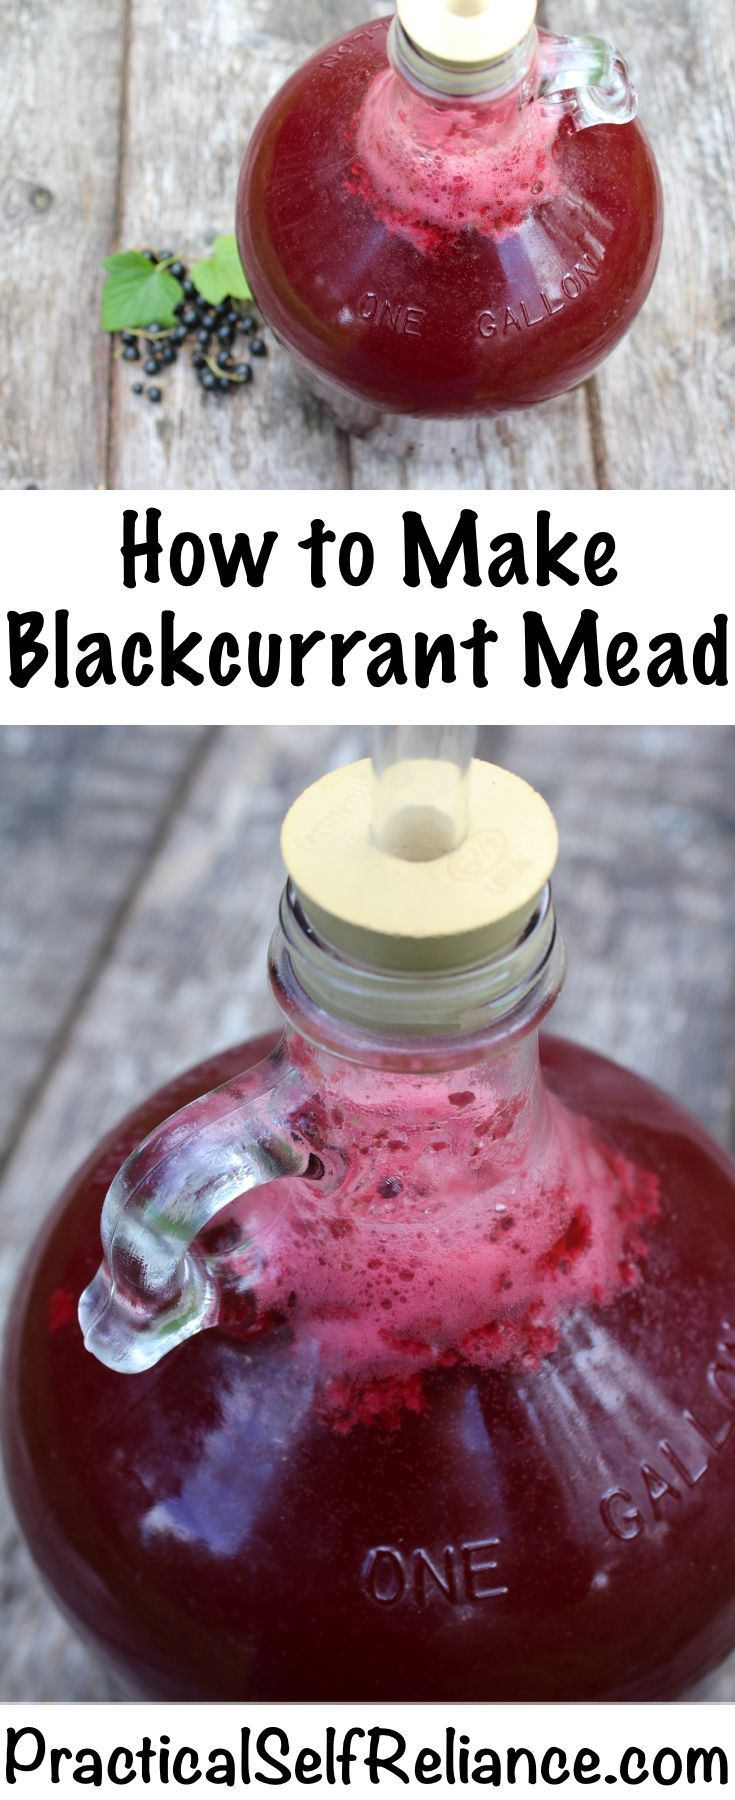 How to Make Blackcurrant Mead - Practical Self Reliance